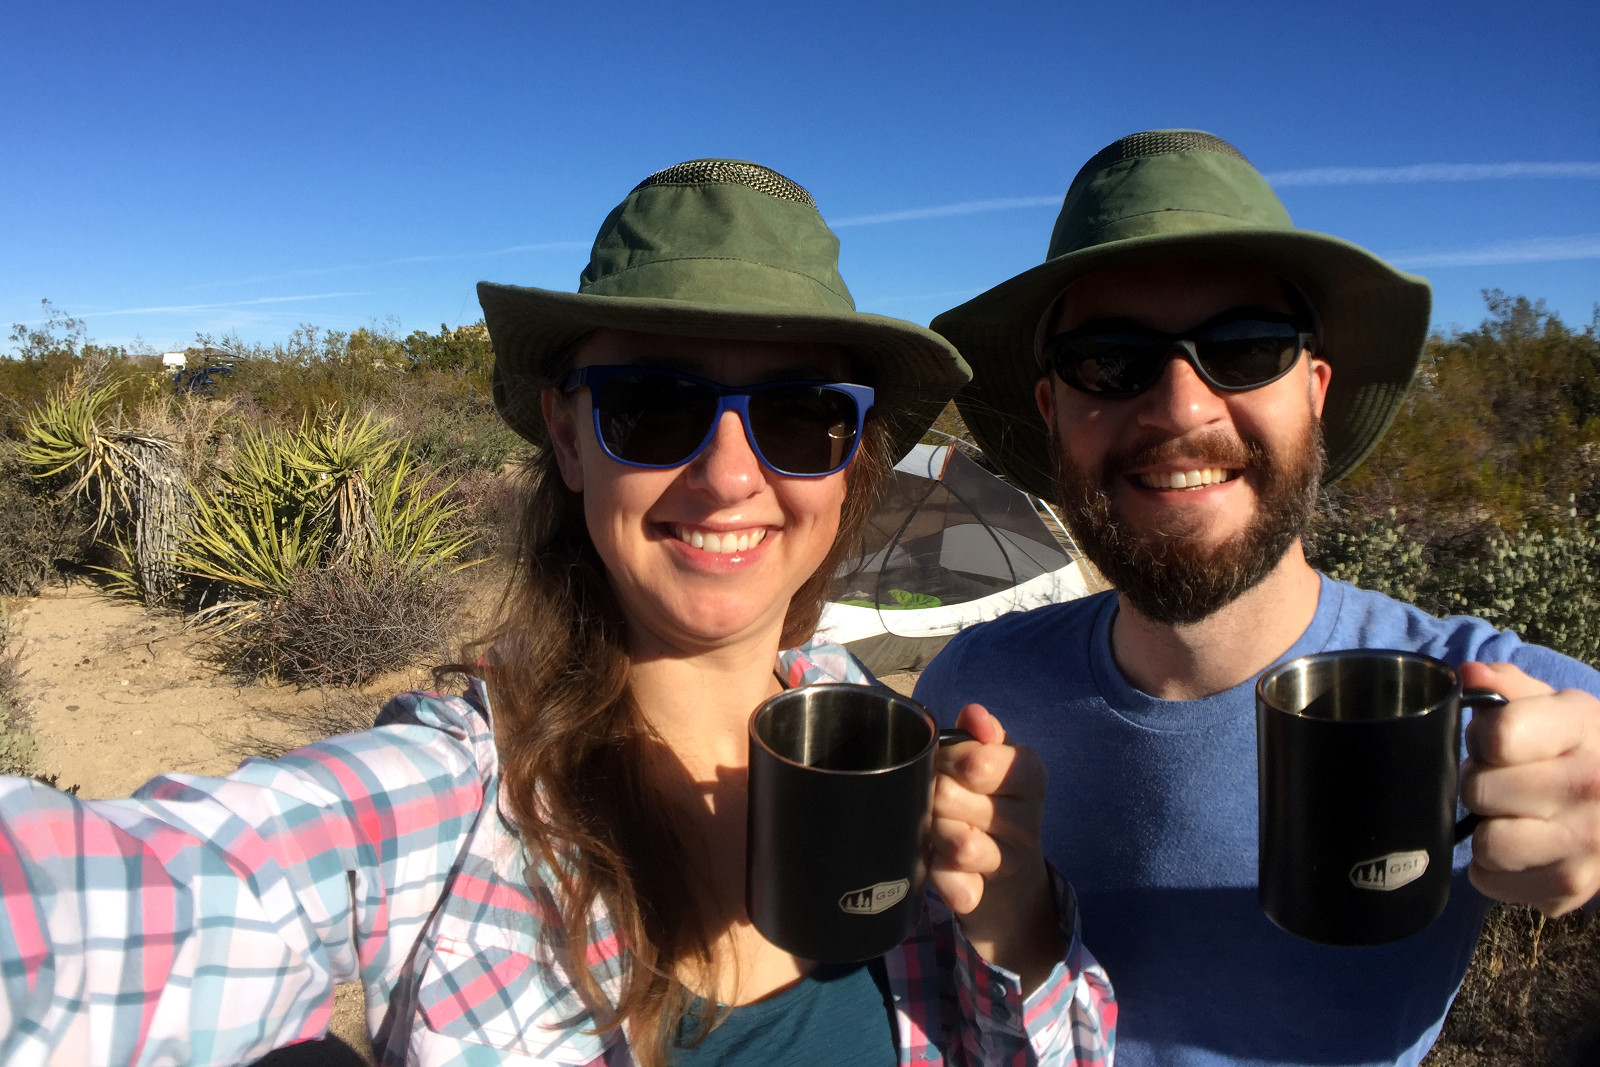 Justin and Stephanie with coffee mugs at Cottonwood Campground in Joshua Tree National Park